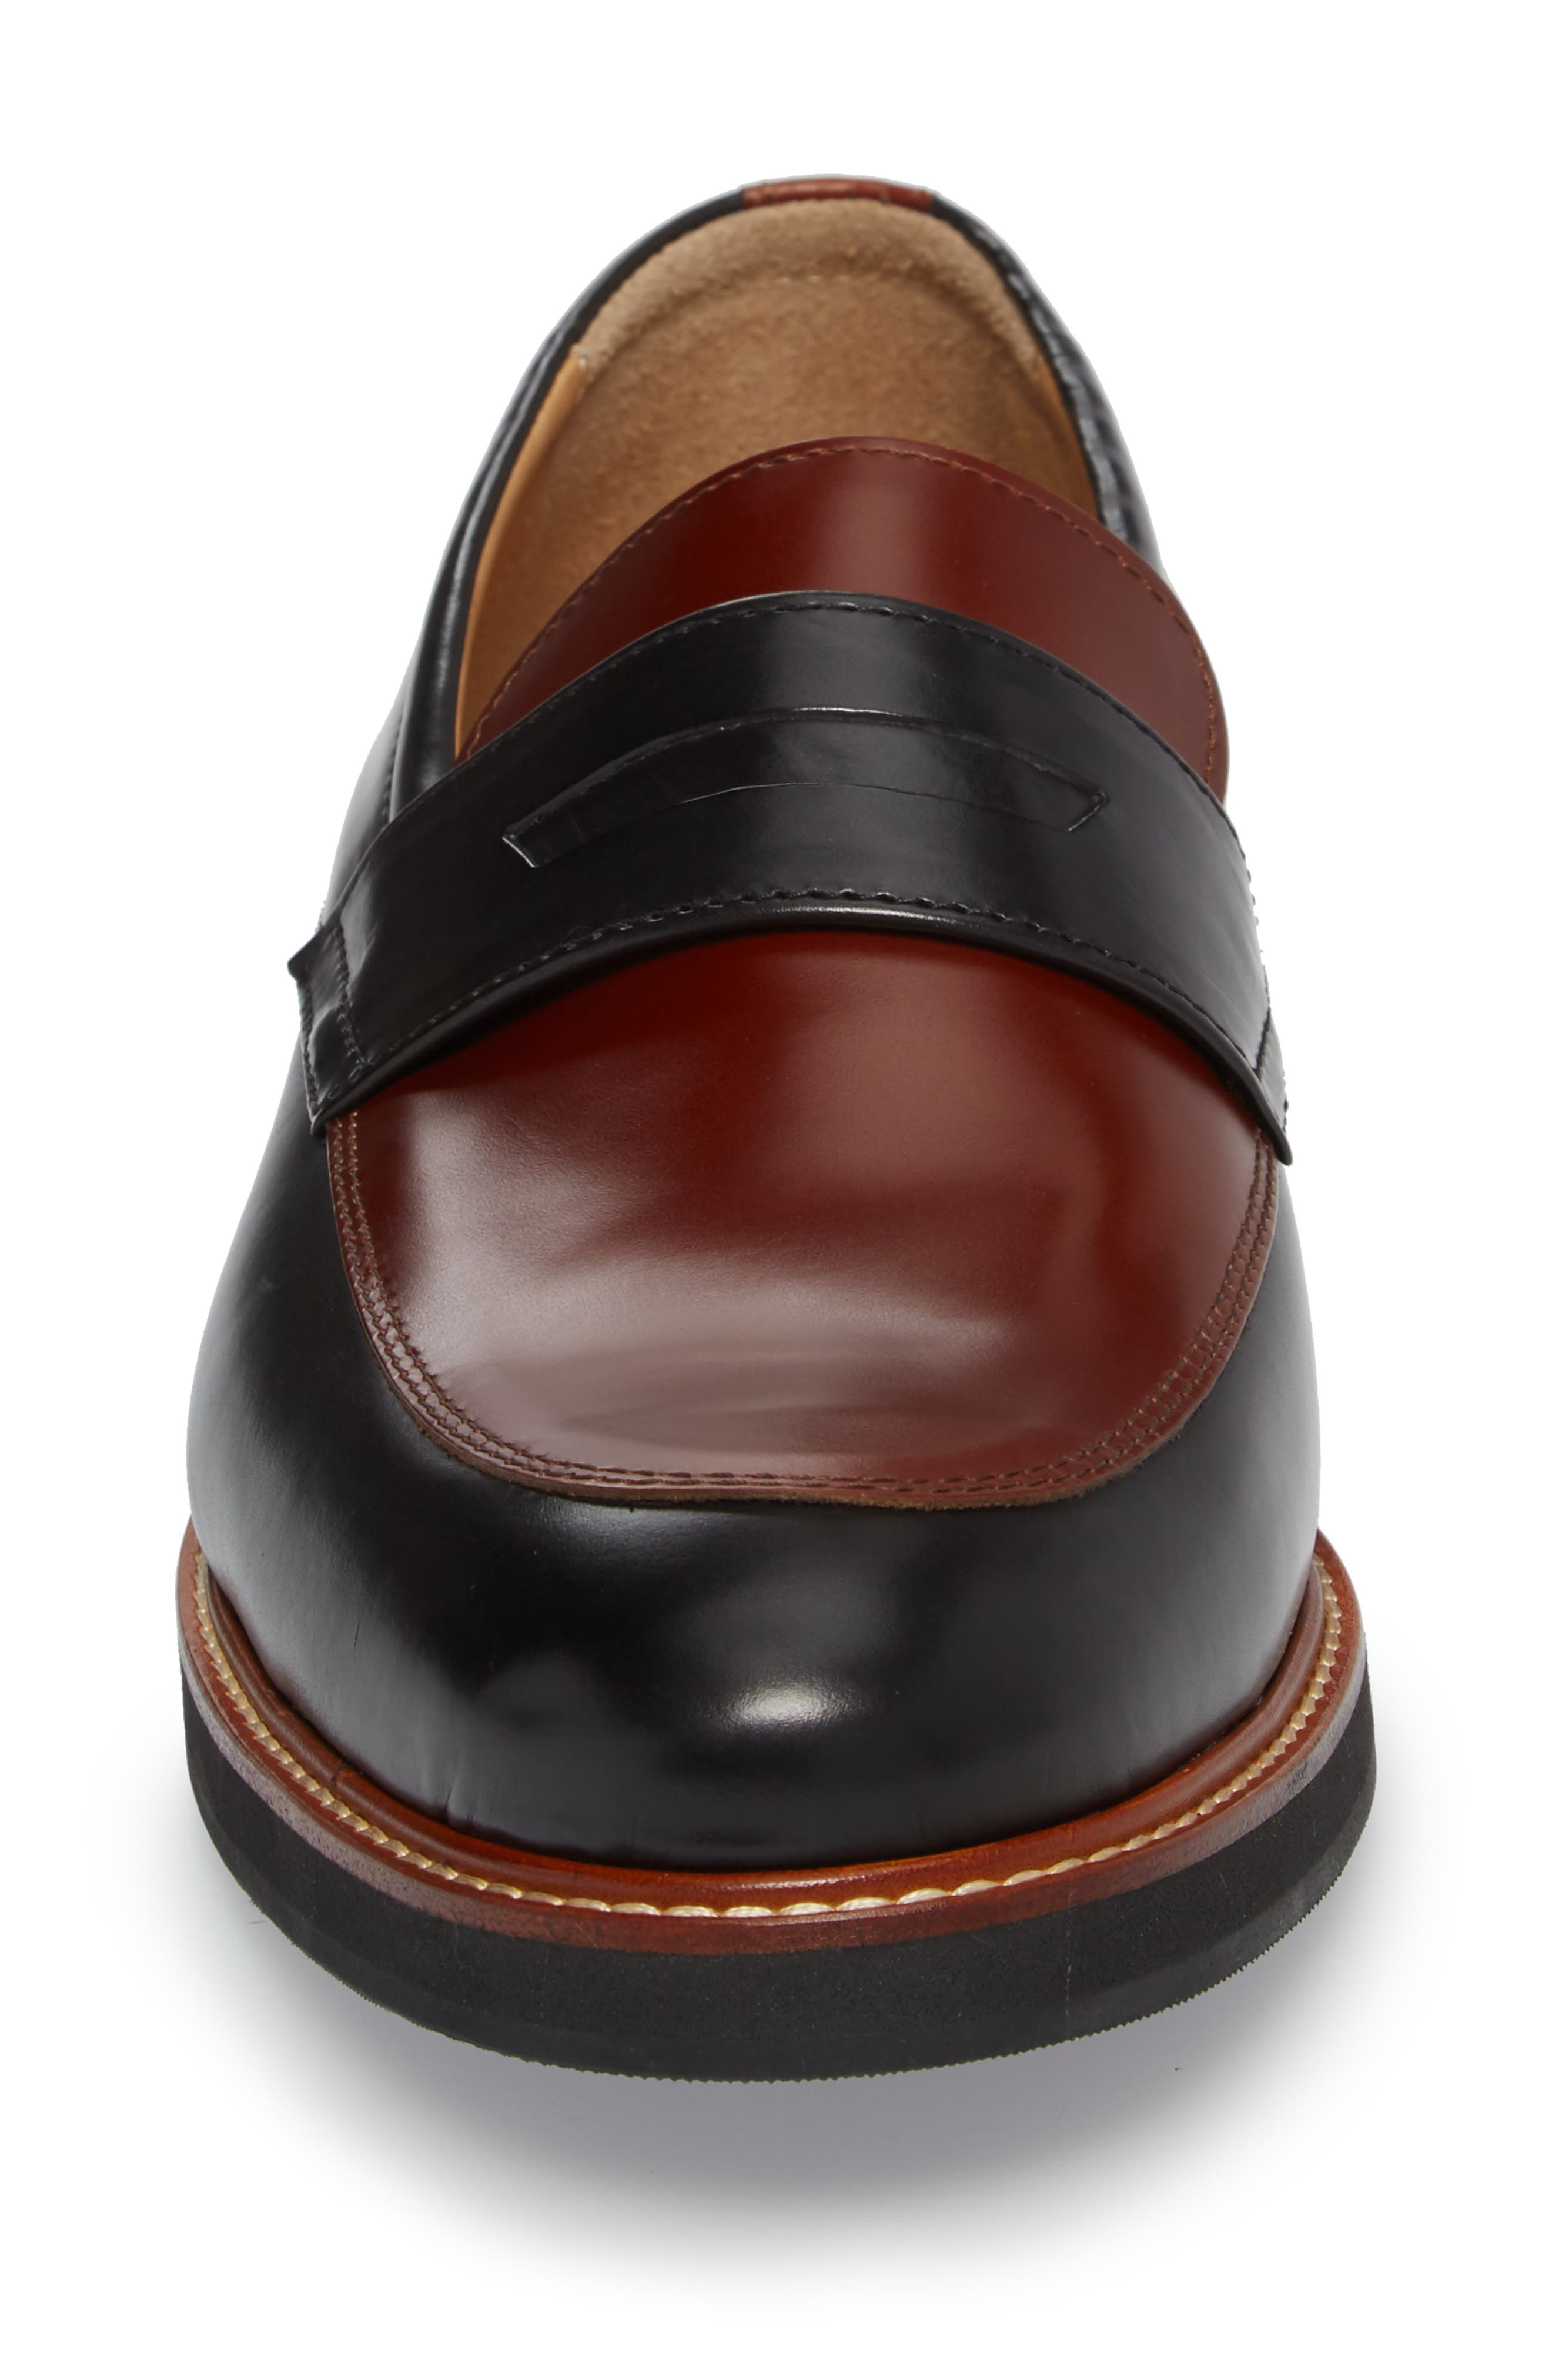 Marcus Penny Loafer,                             Alternate thumbnail 4, color,                             Black/ Cognac